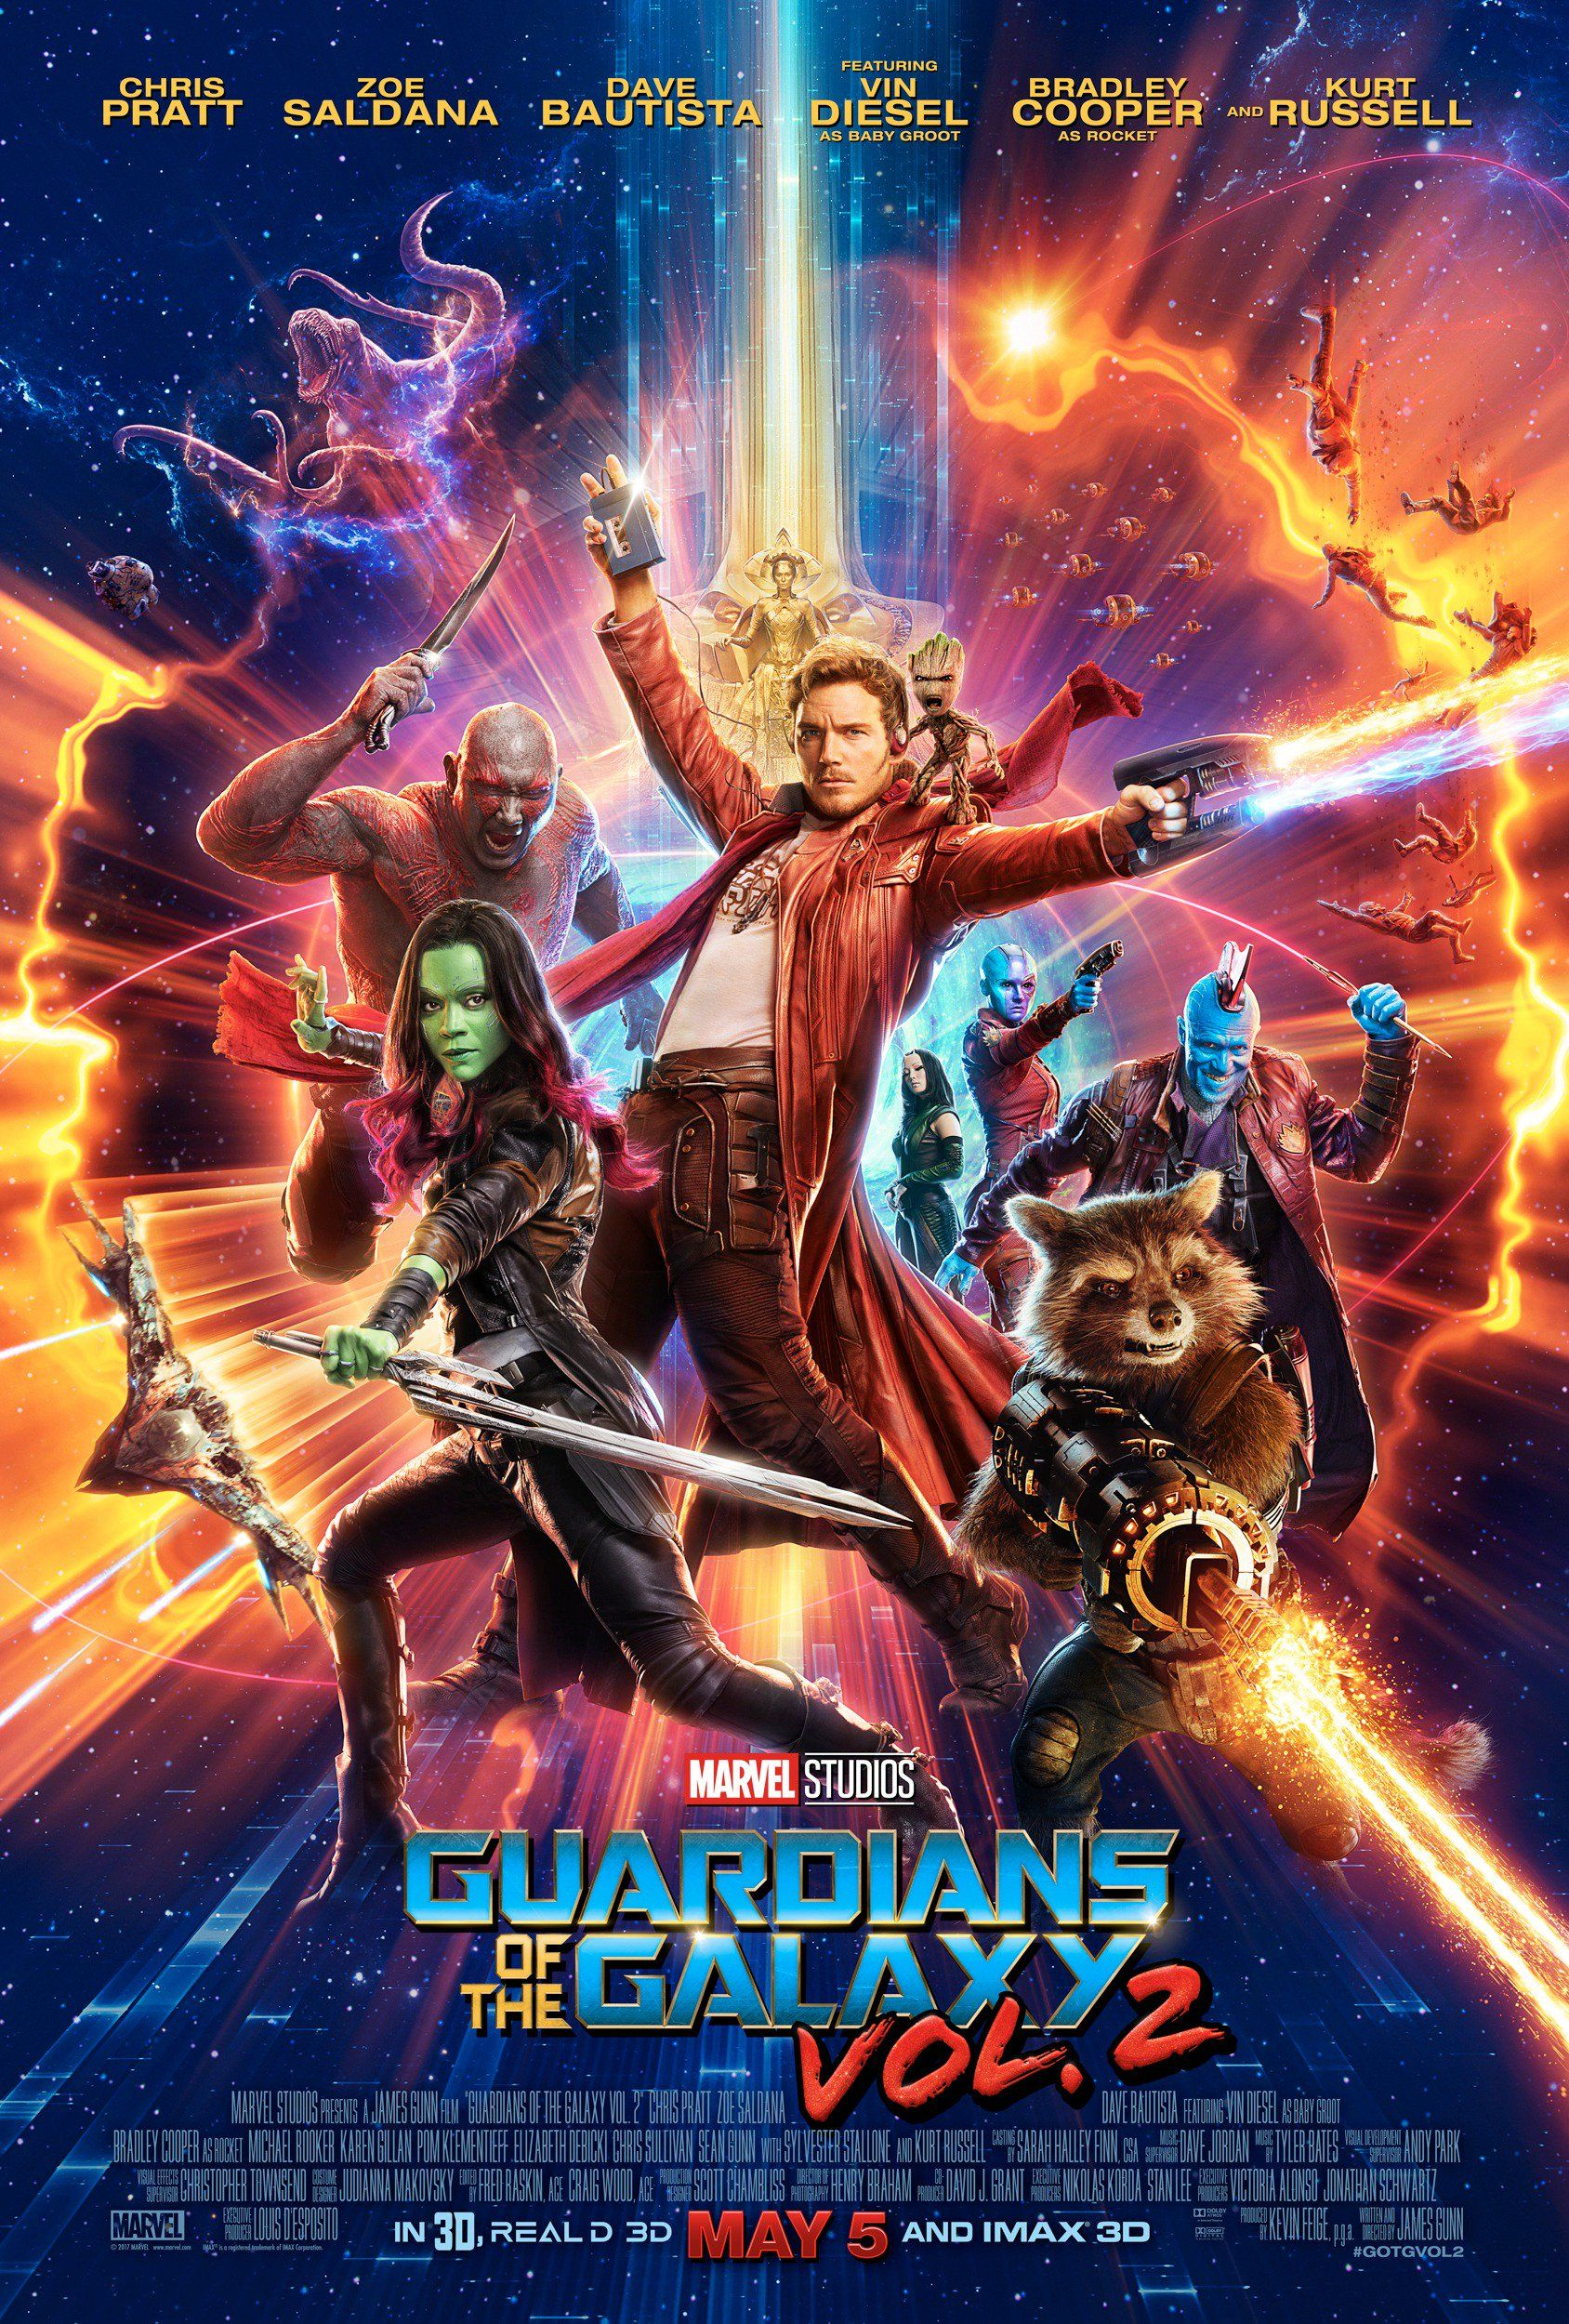 Guardians Of The Galaxy Vol 2 Check Out The Awesome New Trailer